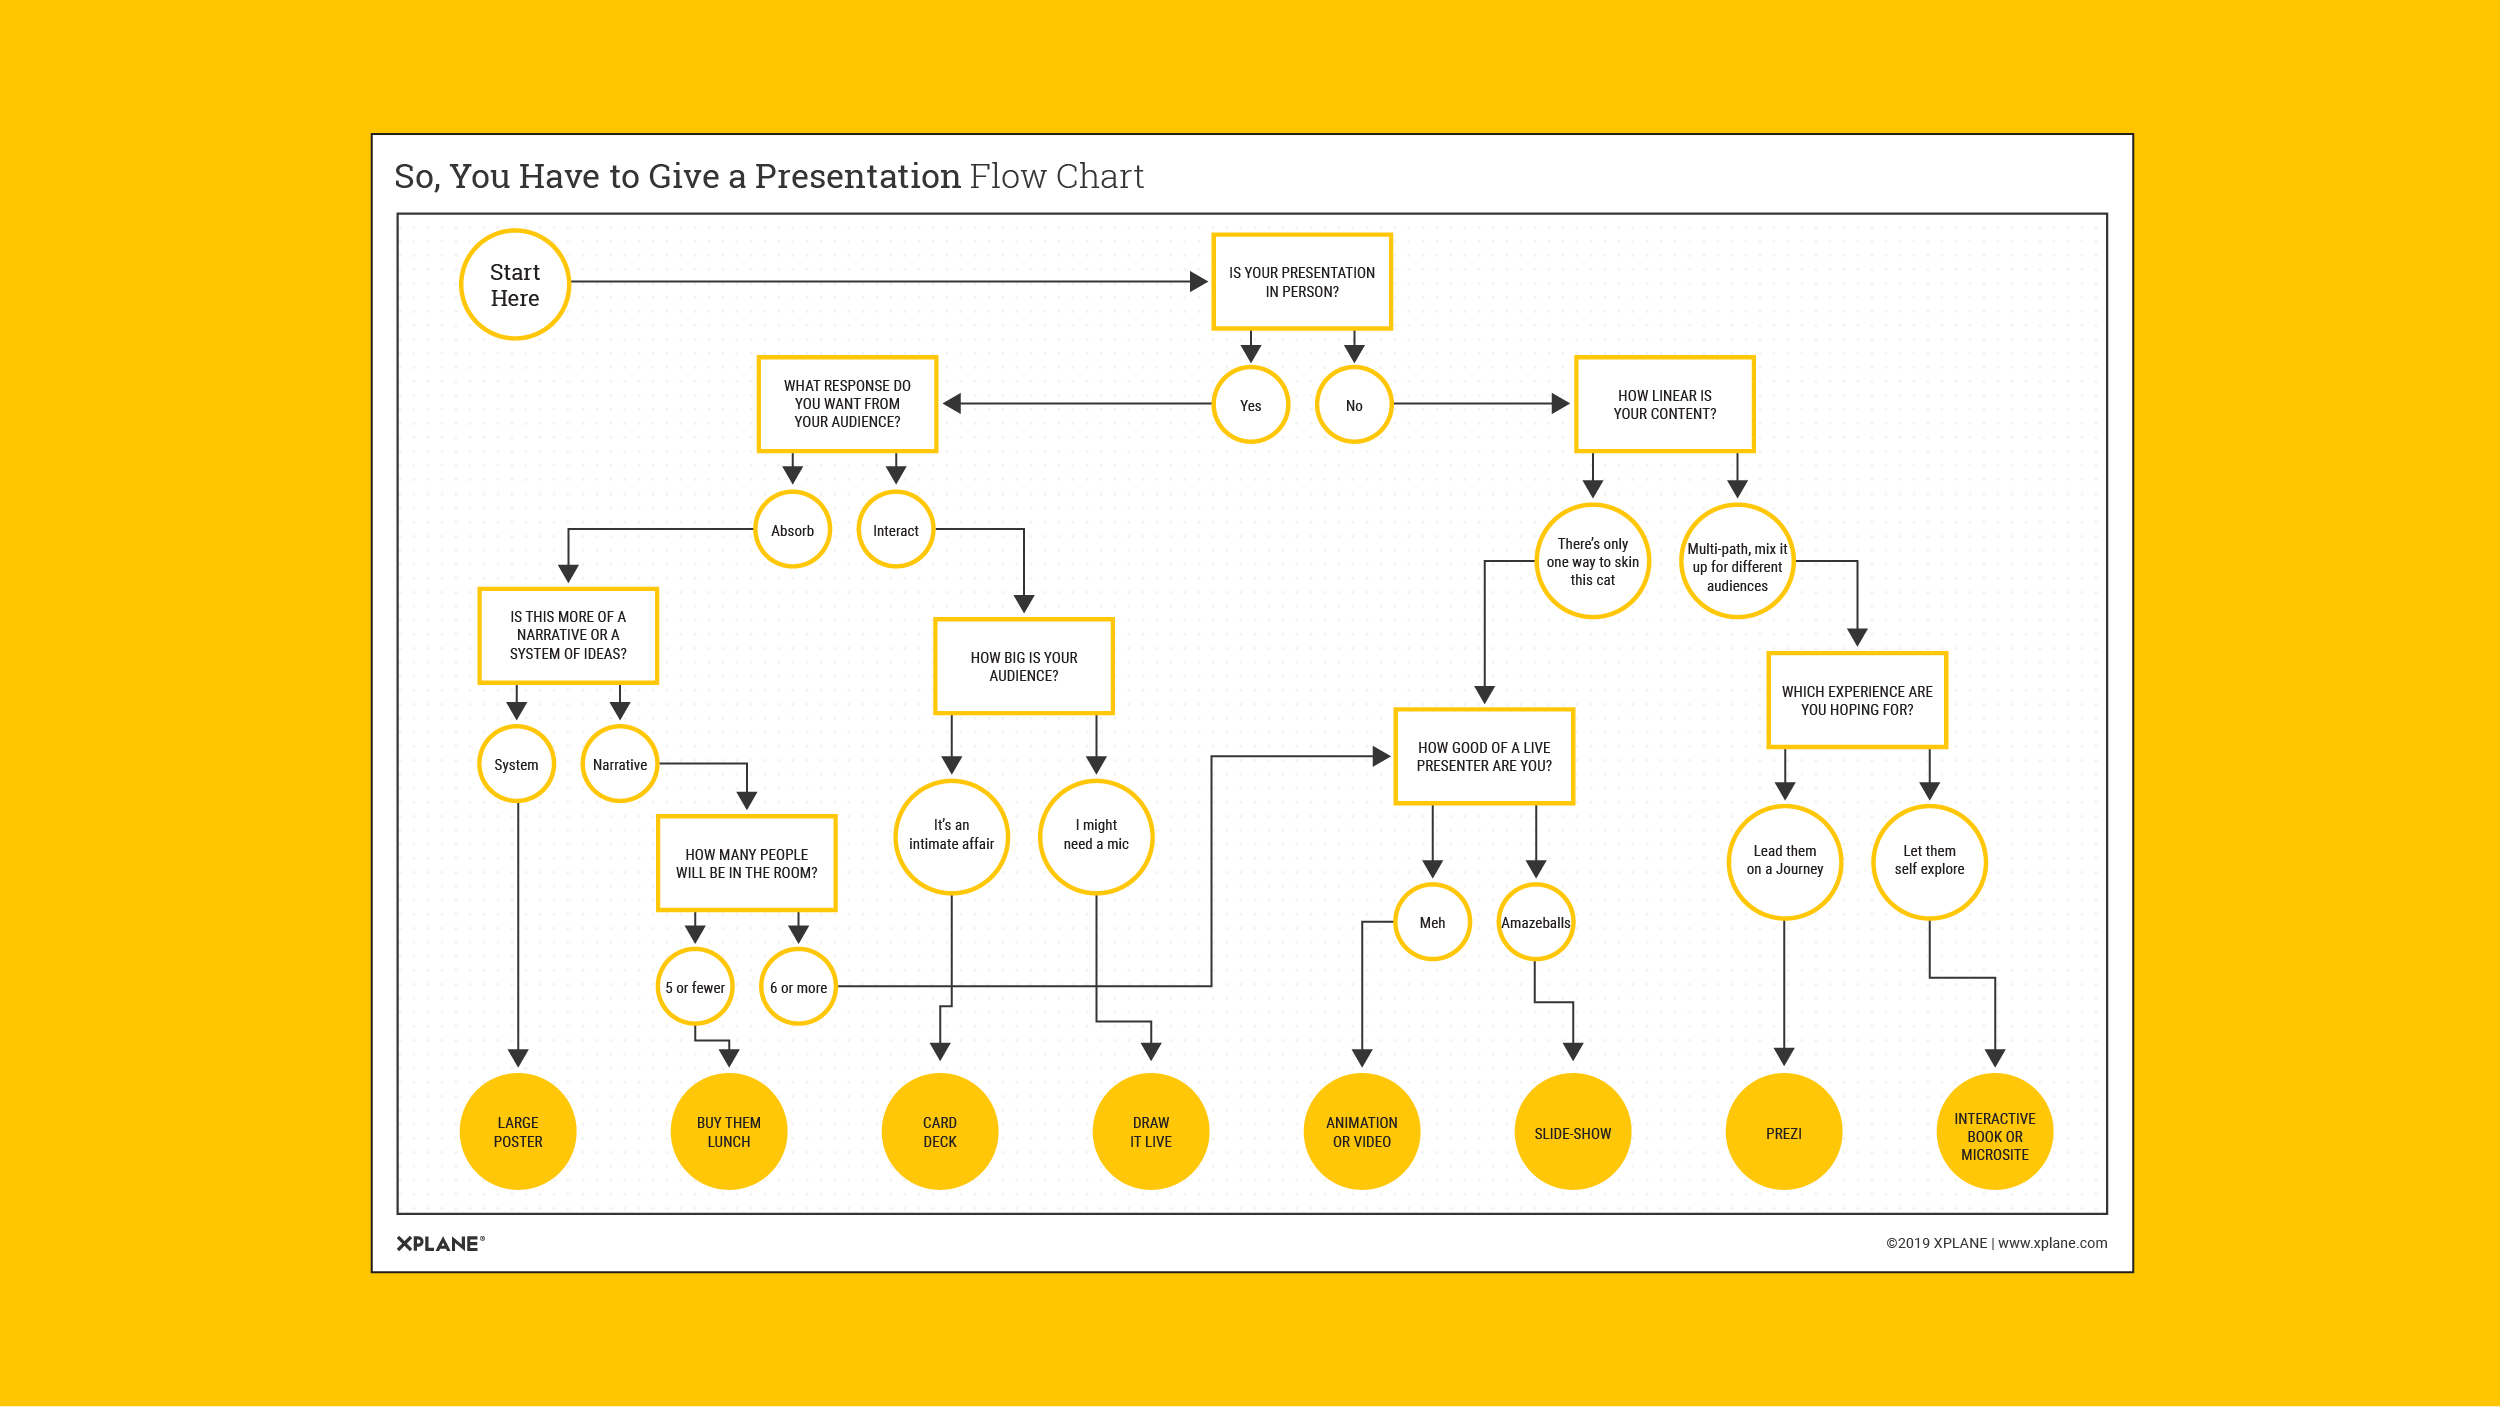 Give a Presentation Flow Chart